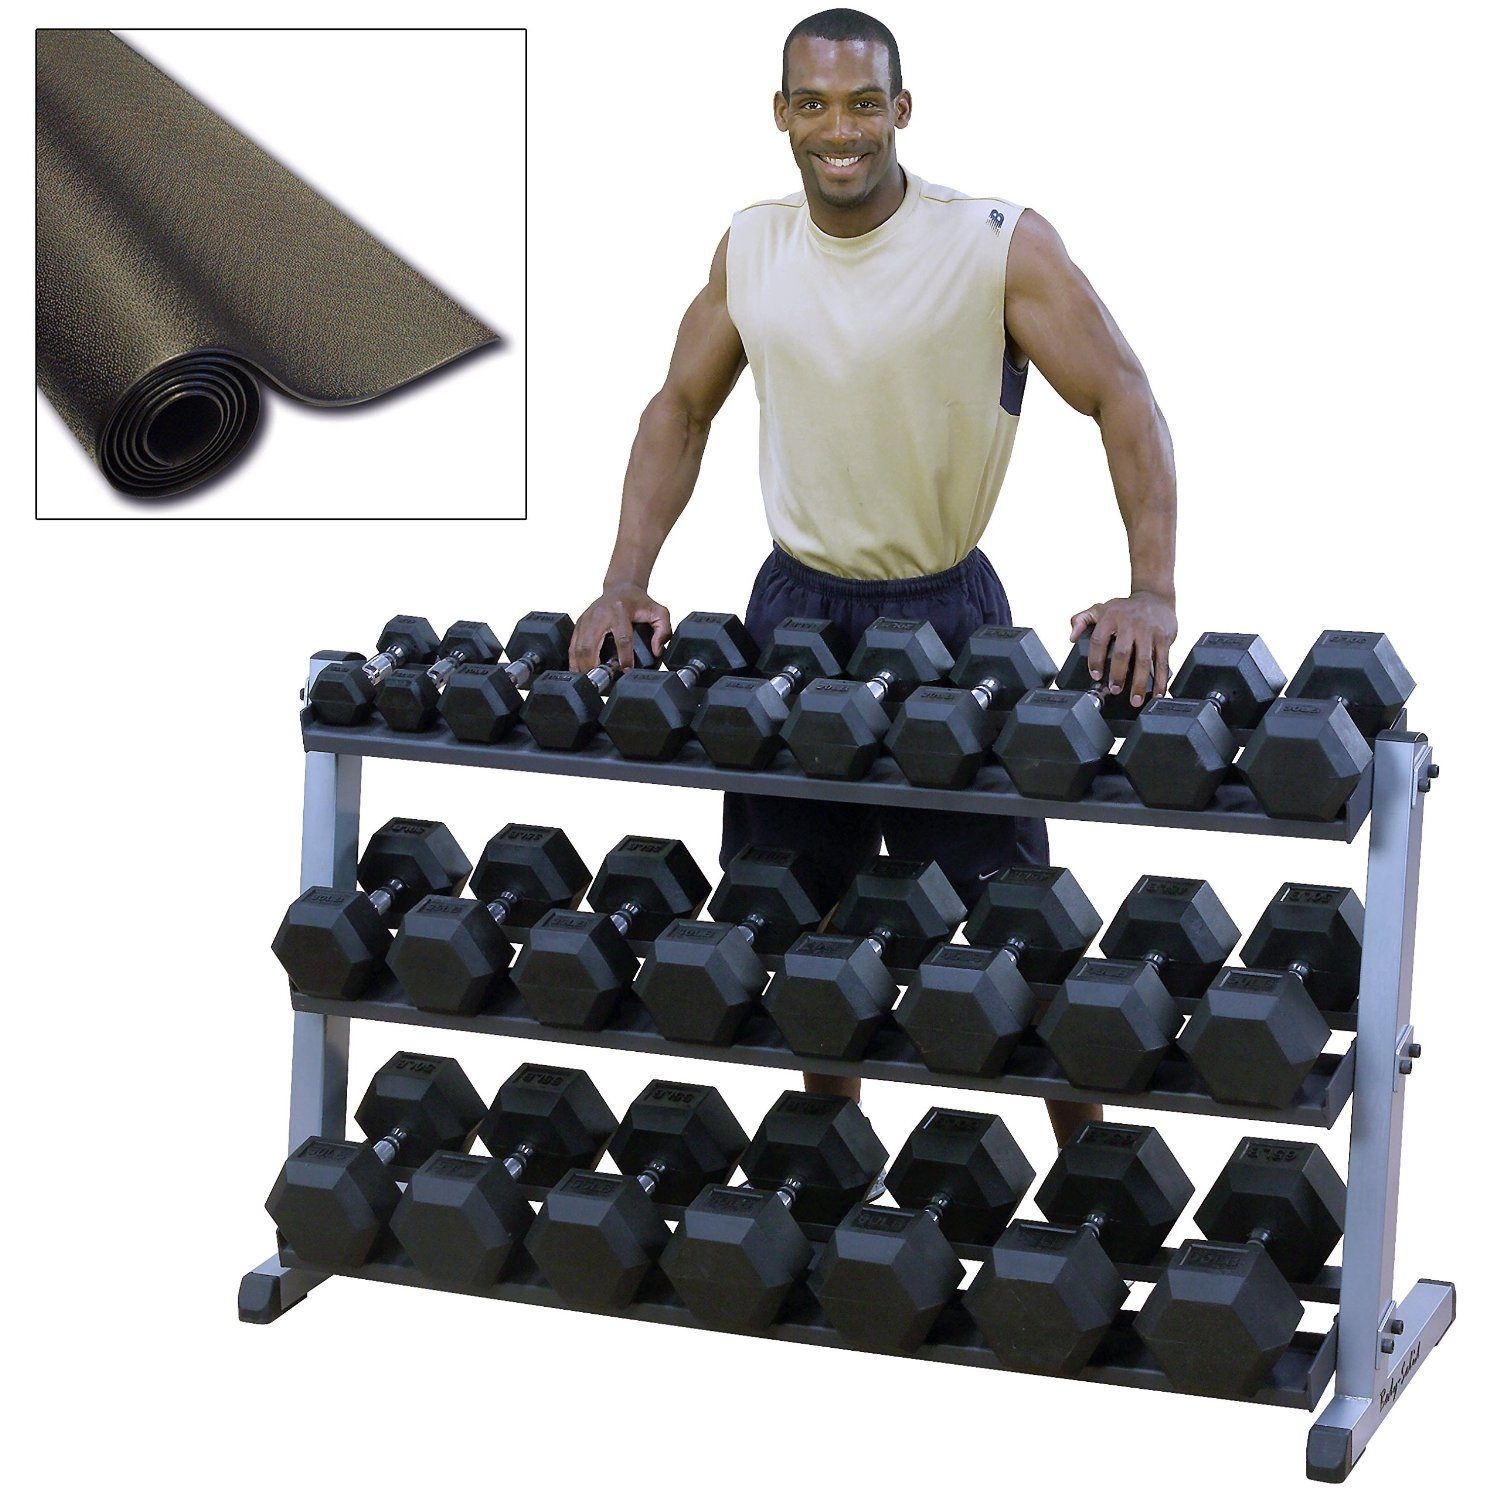 Weight Rack Walmart: Heavy Duty Dumbbell Set With Rack » Fitness Gizmos